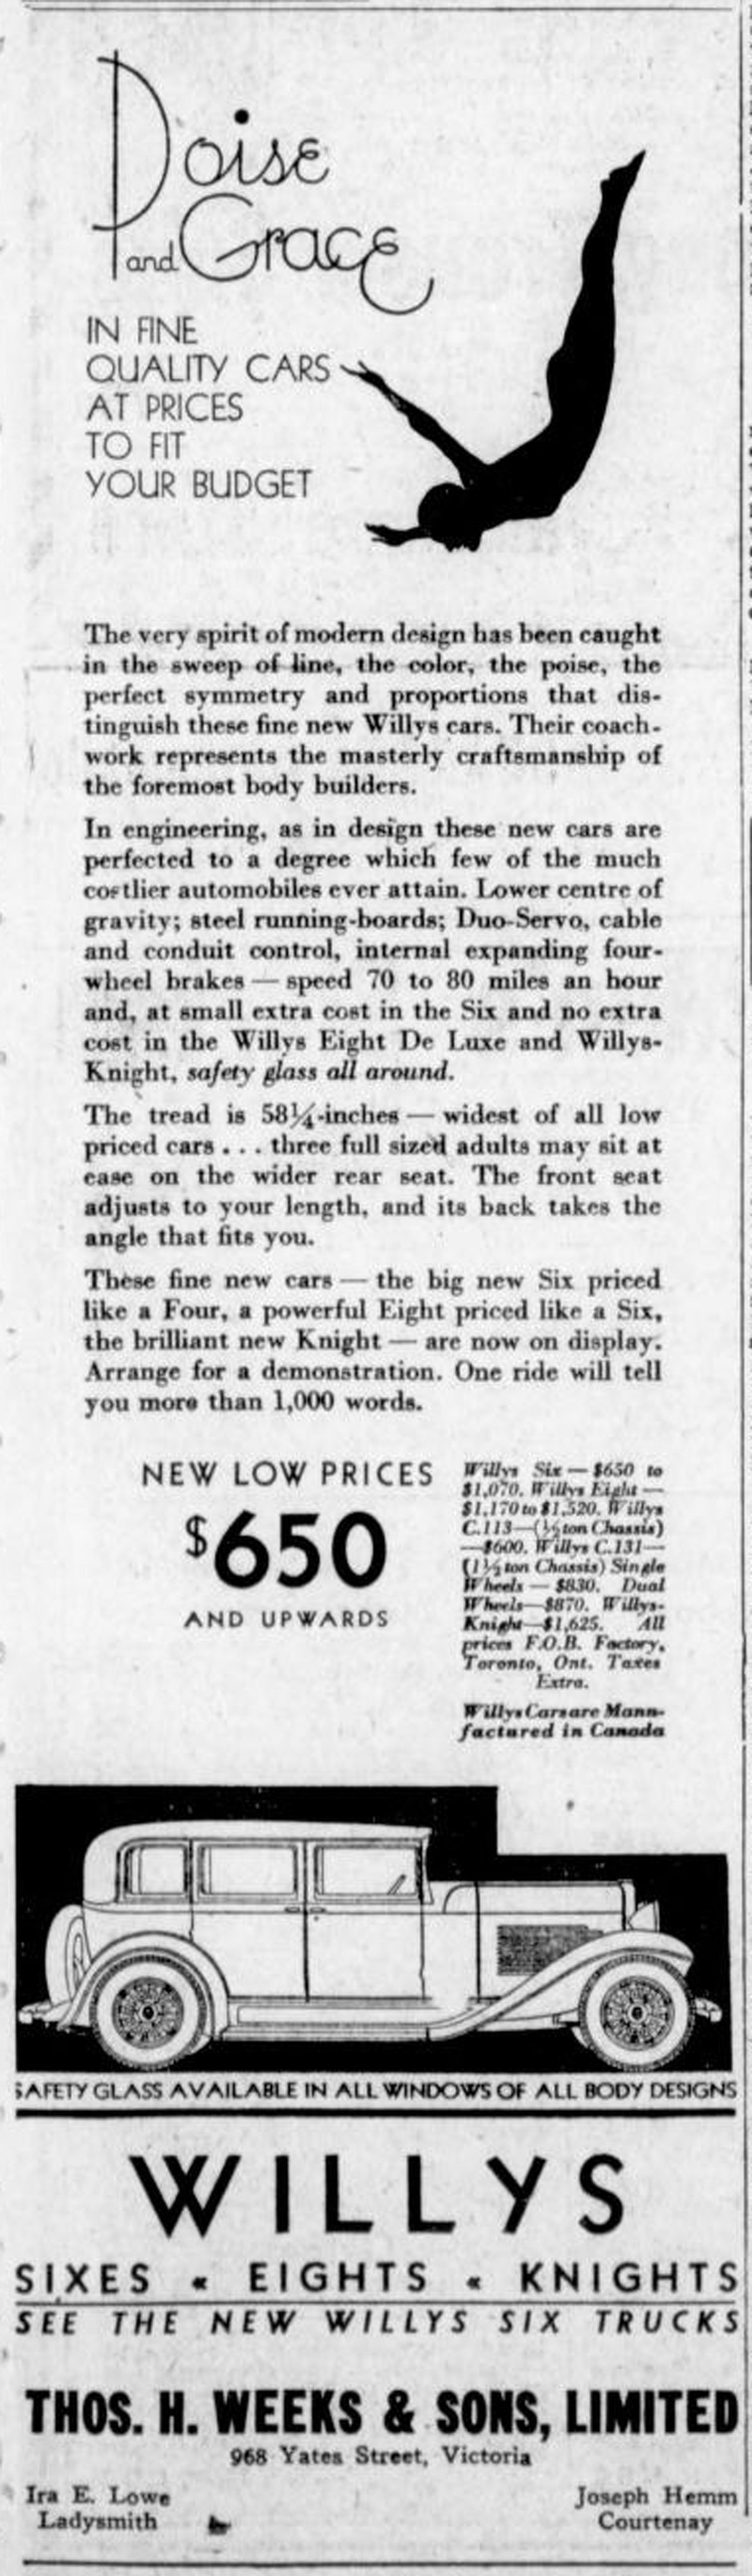 1931 advertisement for Willys cars and trucks, sold by Thomas H. Weeks & Sons Ltd,, 968 Yates Street (Victoria Online Sightseeing Tours collection)